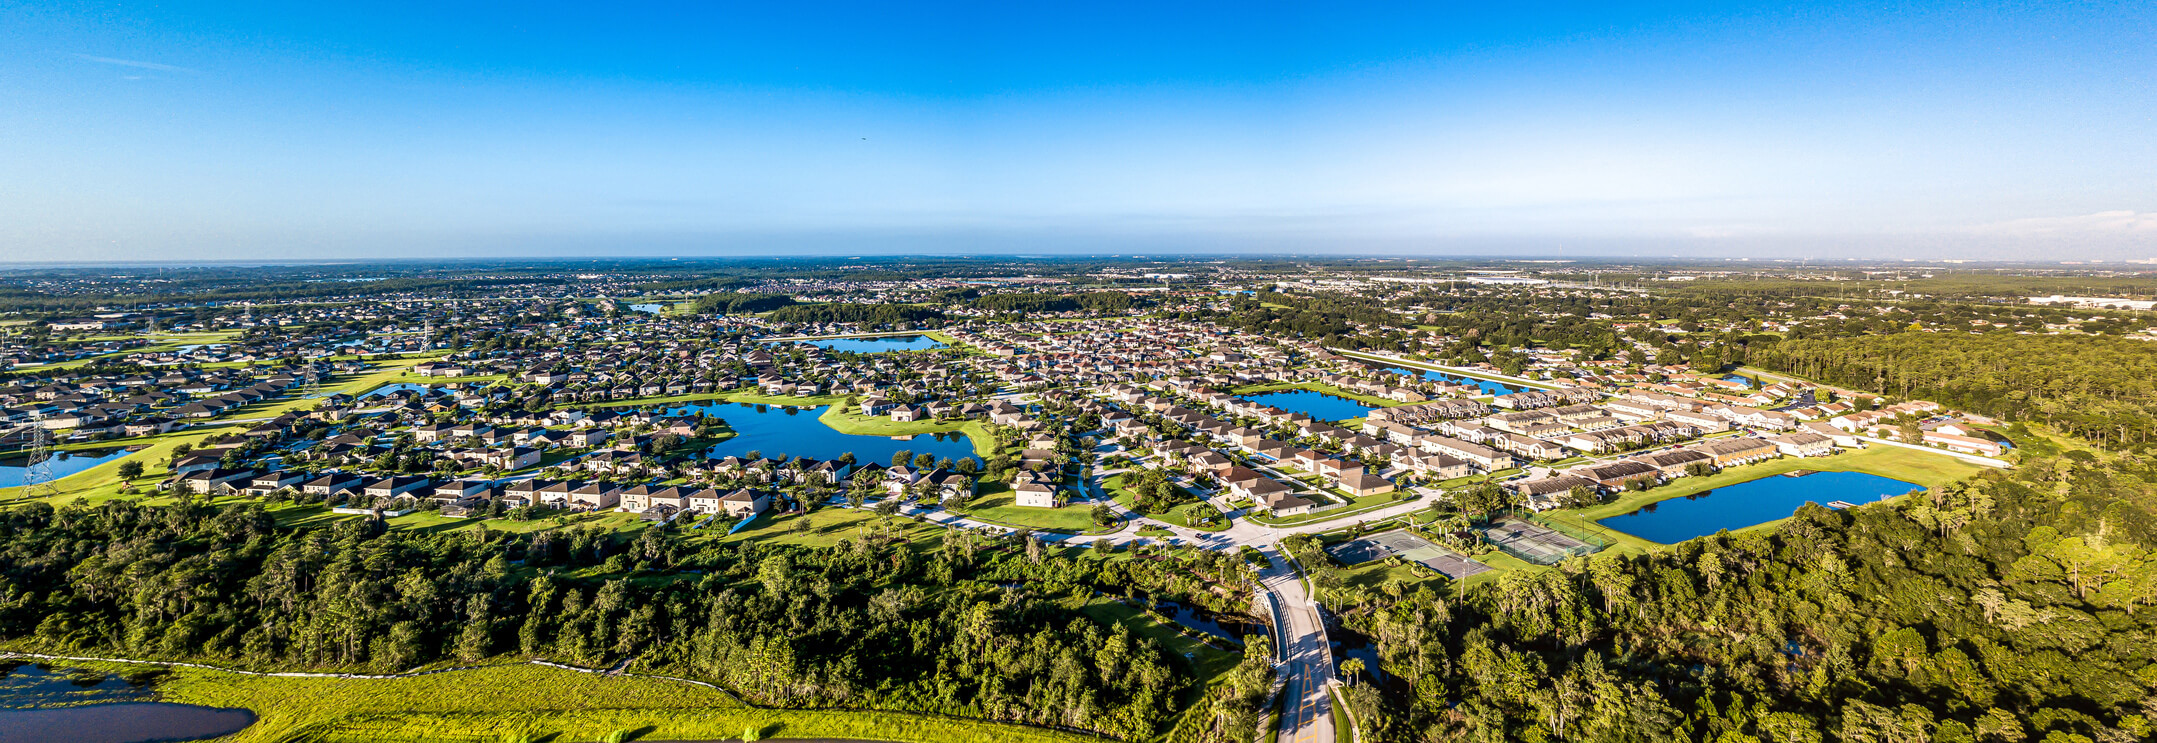 Aerial View of Sawgrass Community